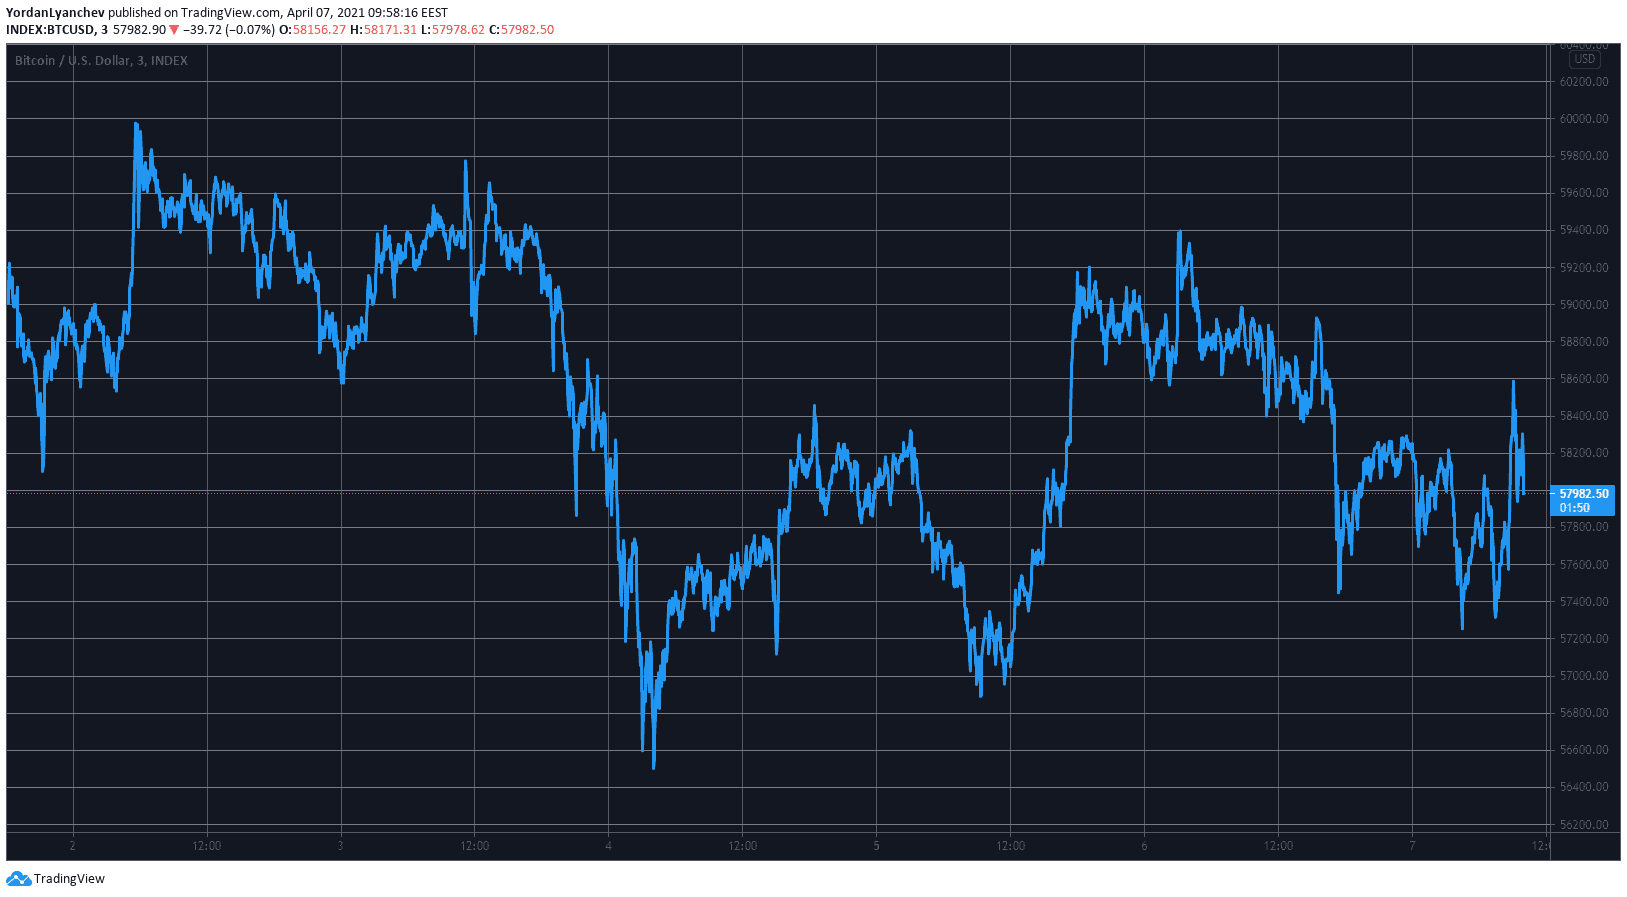 Ripple Price Chart Today - Live RIPPLE/USD - Gold Price